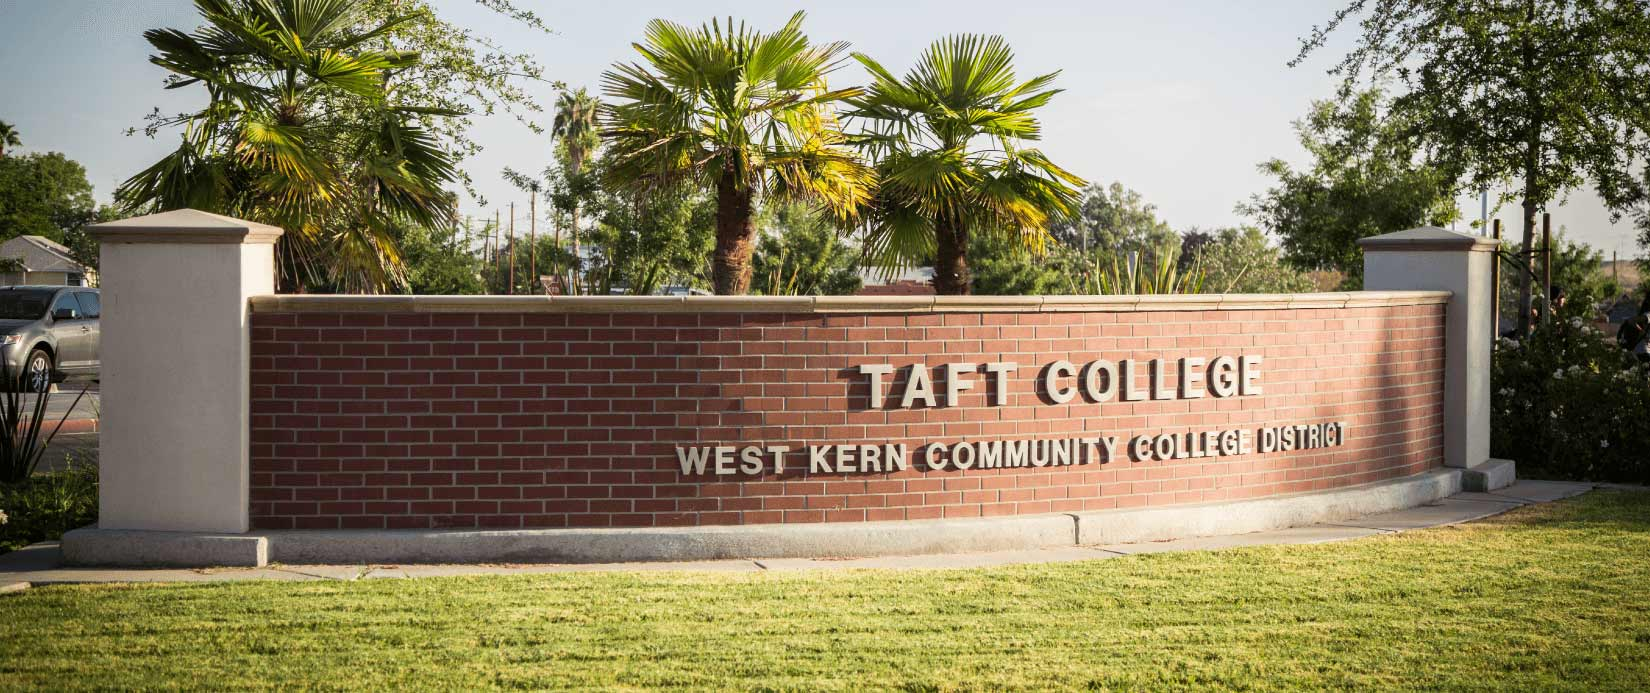 Image of Taft Colleges welcome sign.